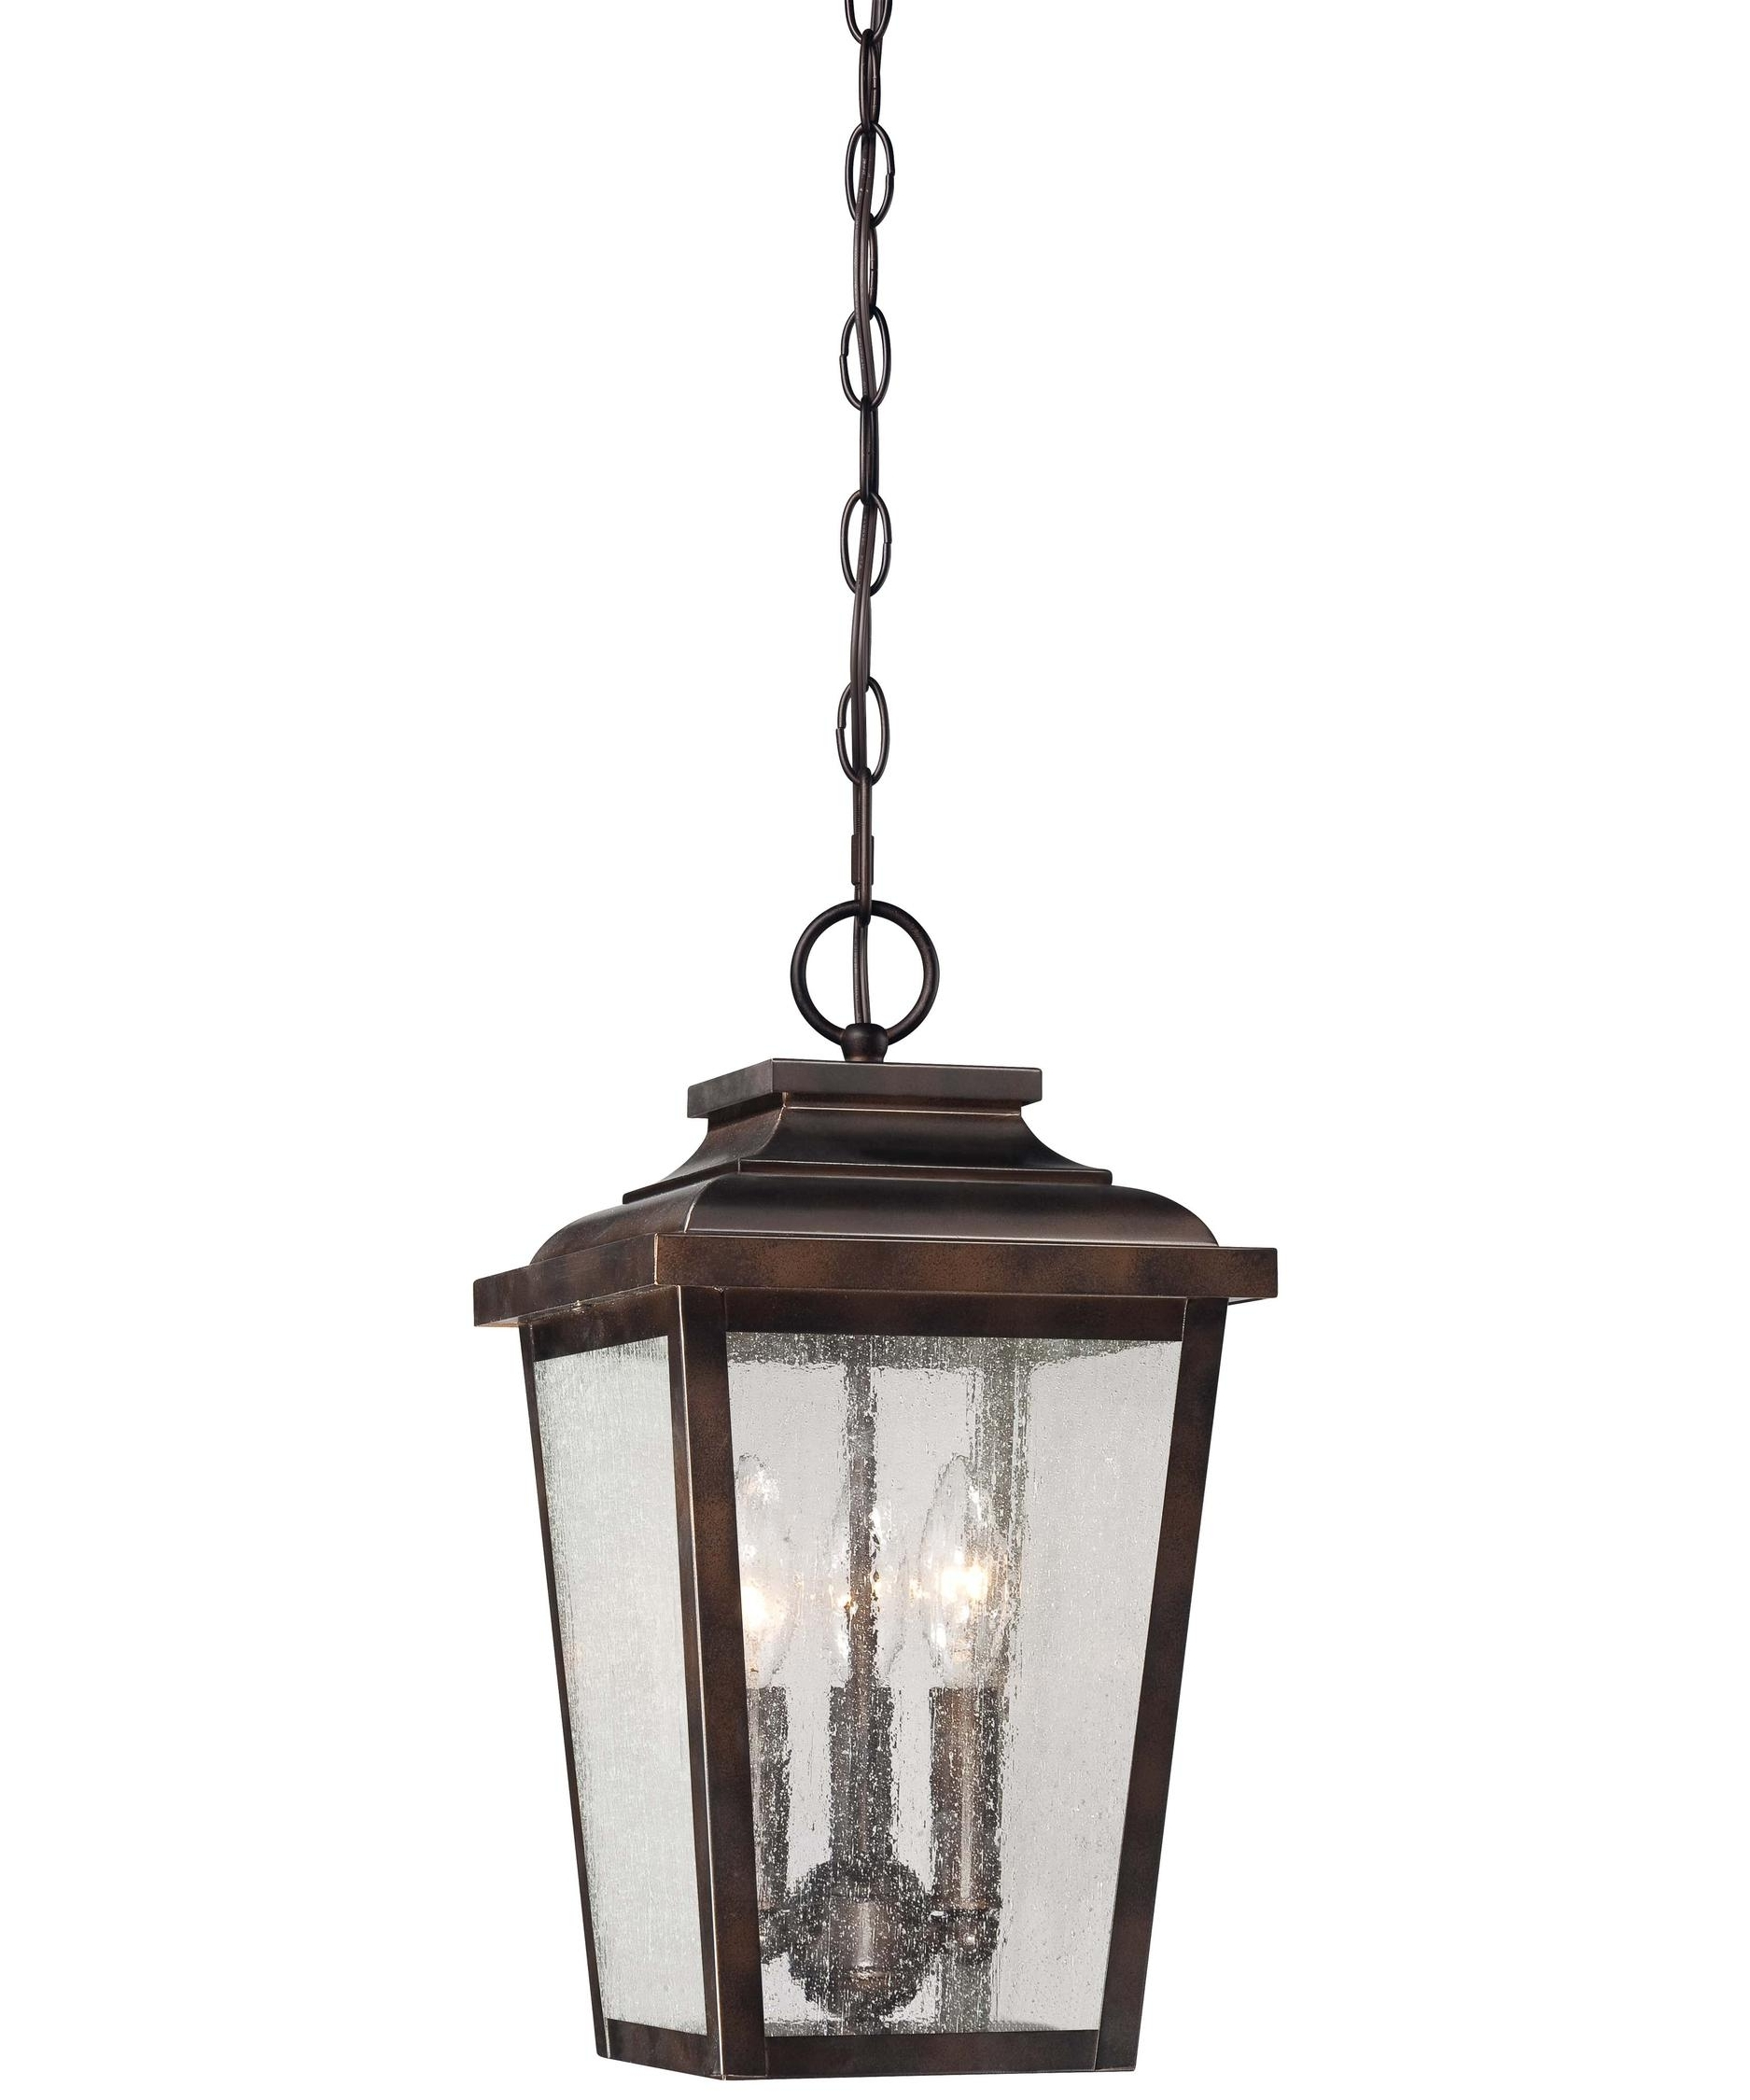 Famous Minka Lavery 72174 Irvington Manor 9 Inch Wide 3 Light Outdoor For Outdoor Iron Hanging Lights (Gallery 4 of 20)